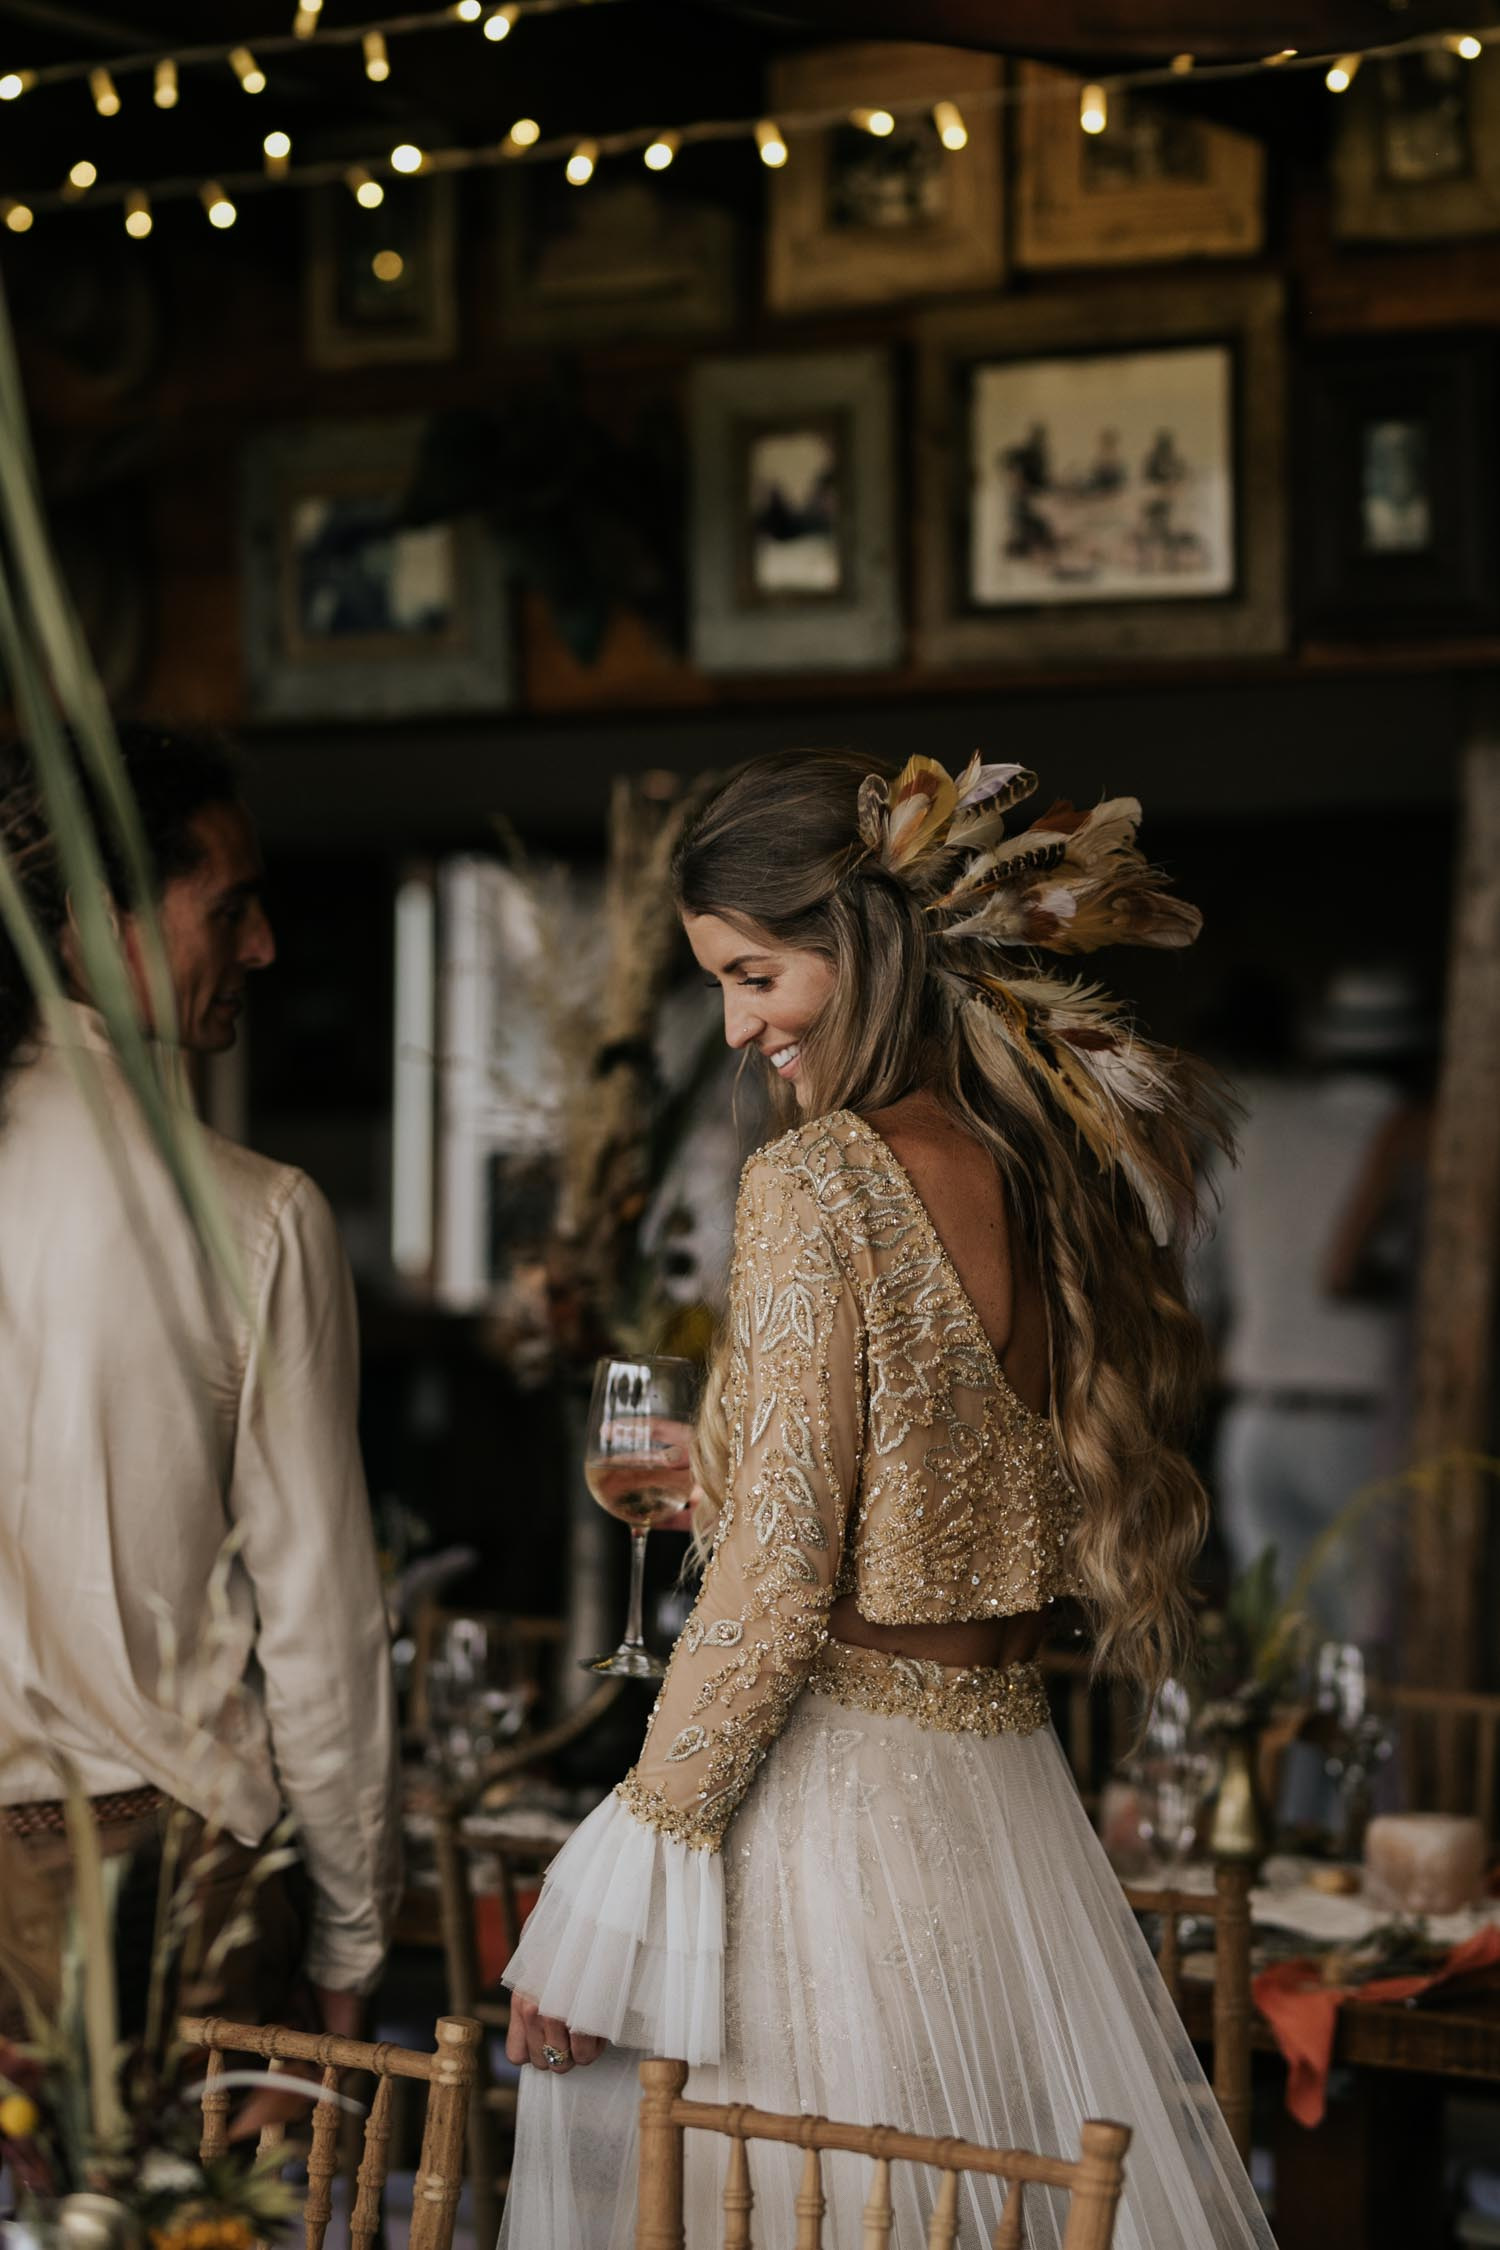 Breathtaking boho gypsy bride with feather in her hair smiles seeing the beauty of her reception decor